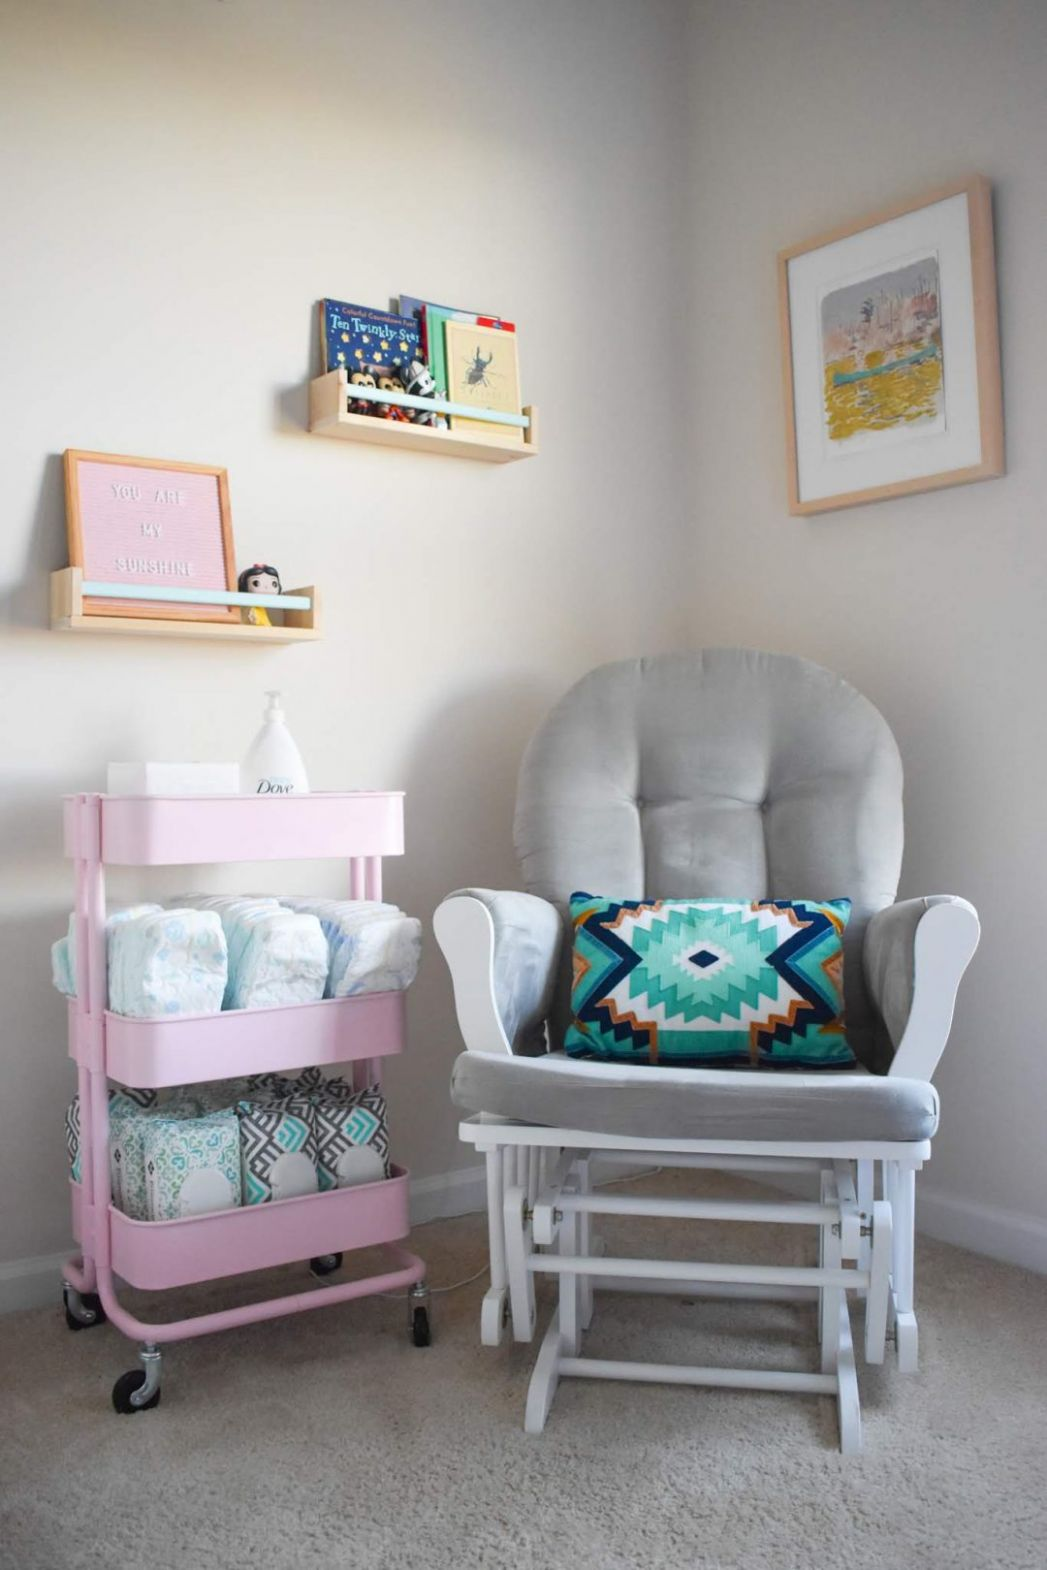 8 Ikea Hacks for a Modern Baby Nursery • Our Little Chaos - baby room hacks